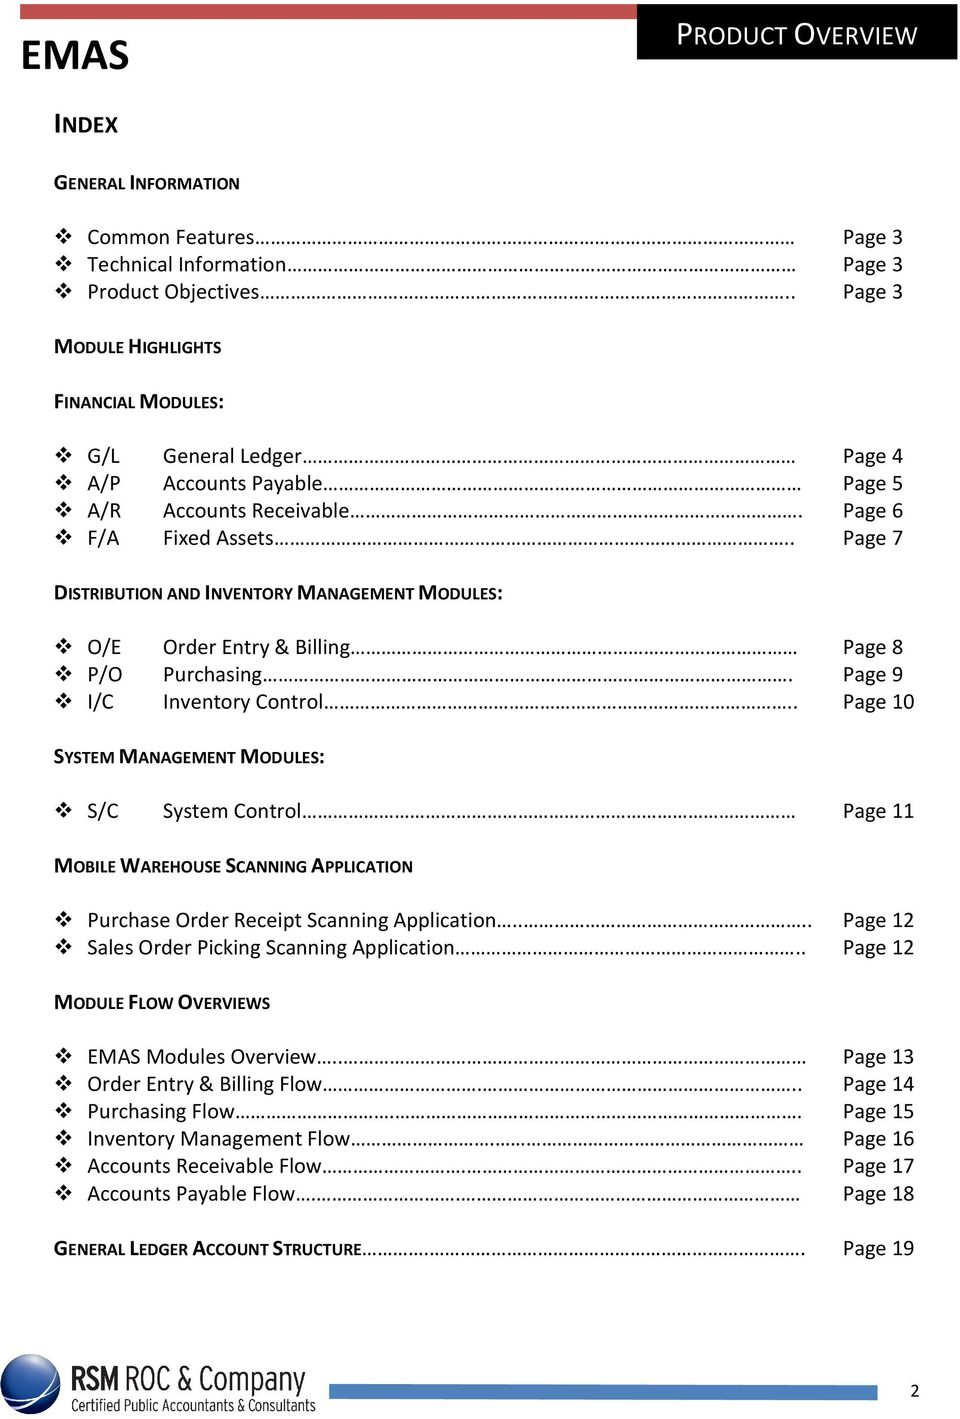 . Page 7 DISTRIBUTION AND INVENTORY MANAGEMENT MODULES: O/E Order Entry & Billing Page 8 P/O Purchasing. Page 9 I/C Inventory Control.